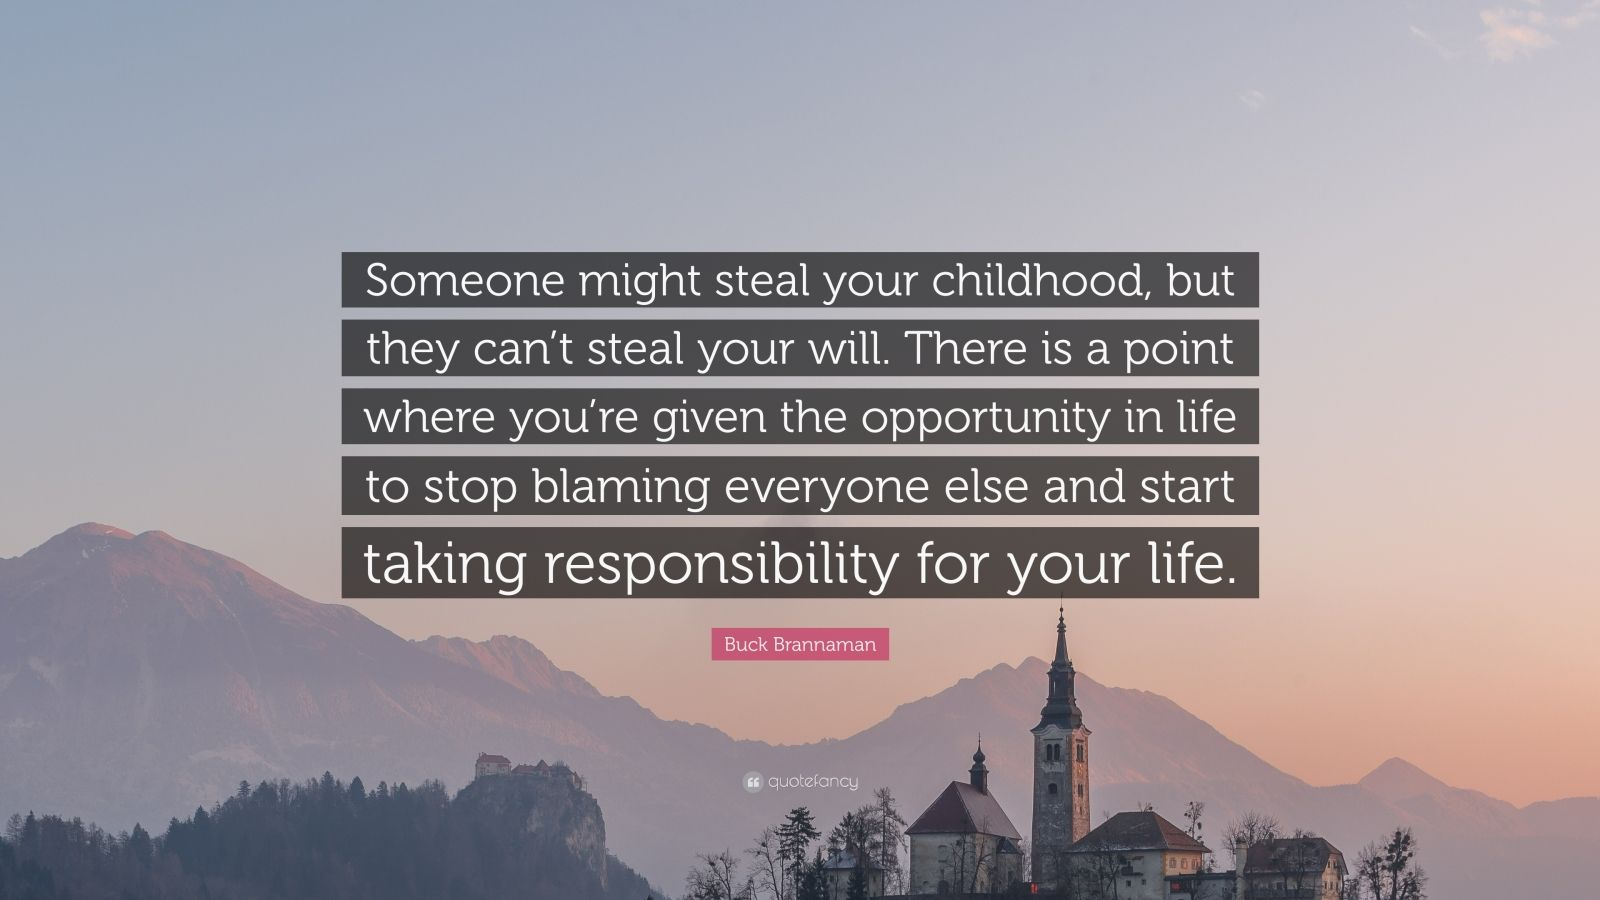 """Buck Brannaman Quote: """"Someone might steal your childhood, but they can't steal your will. There is a point where you're given the opportunity in life to stop blaming everyone else and start taking responsibility for your life."""""""